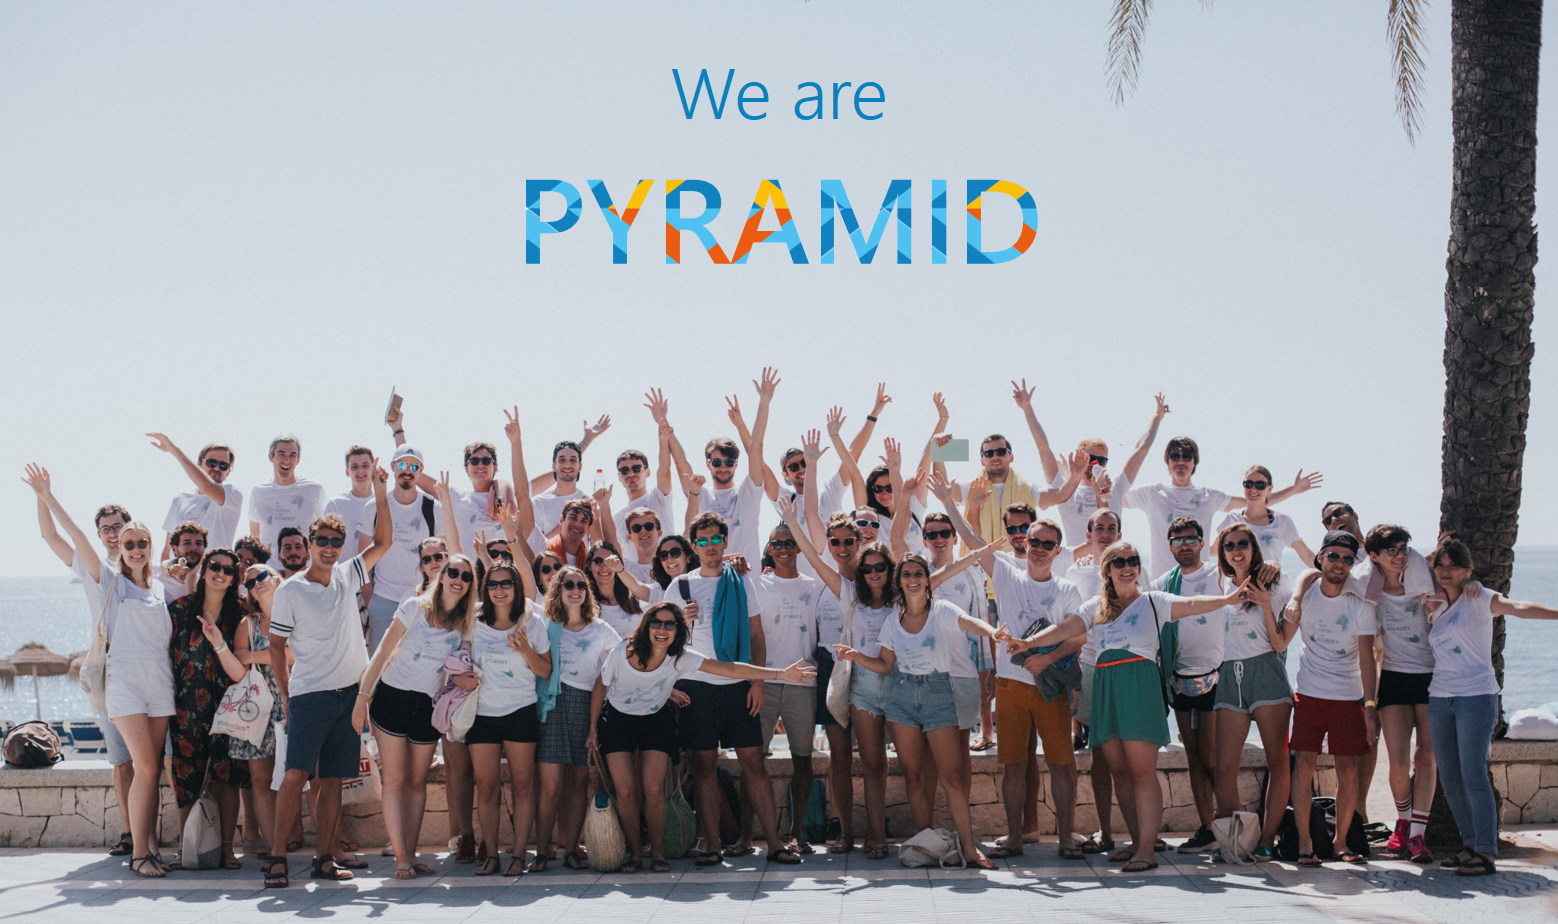 We are Pyramid